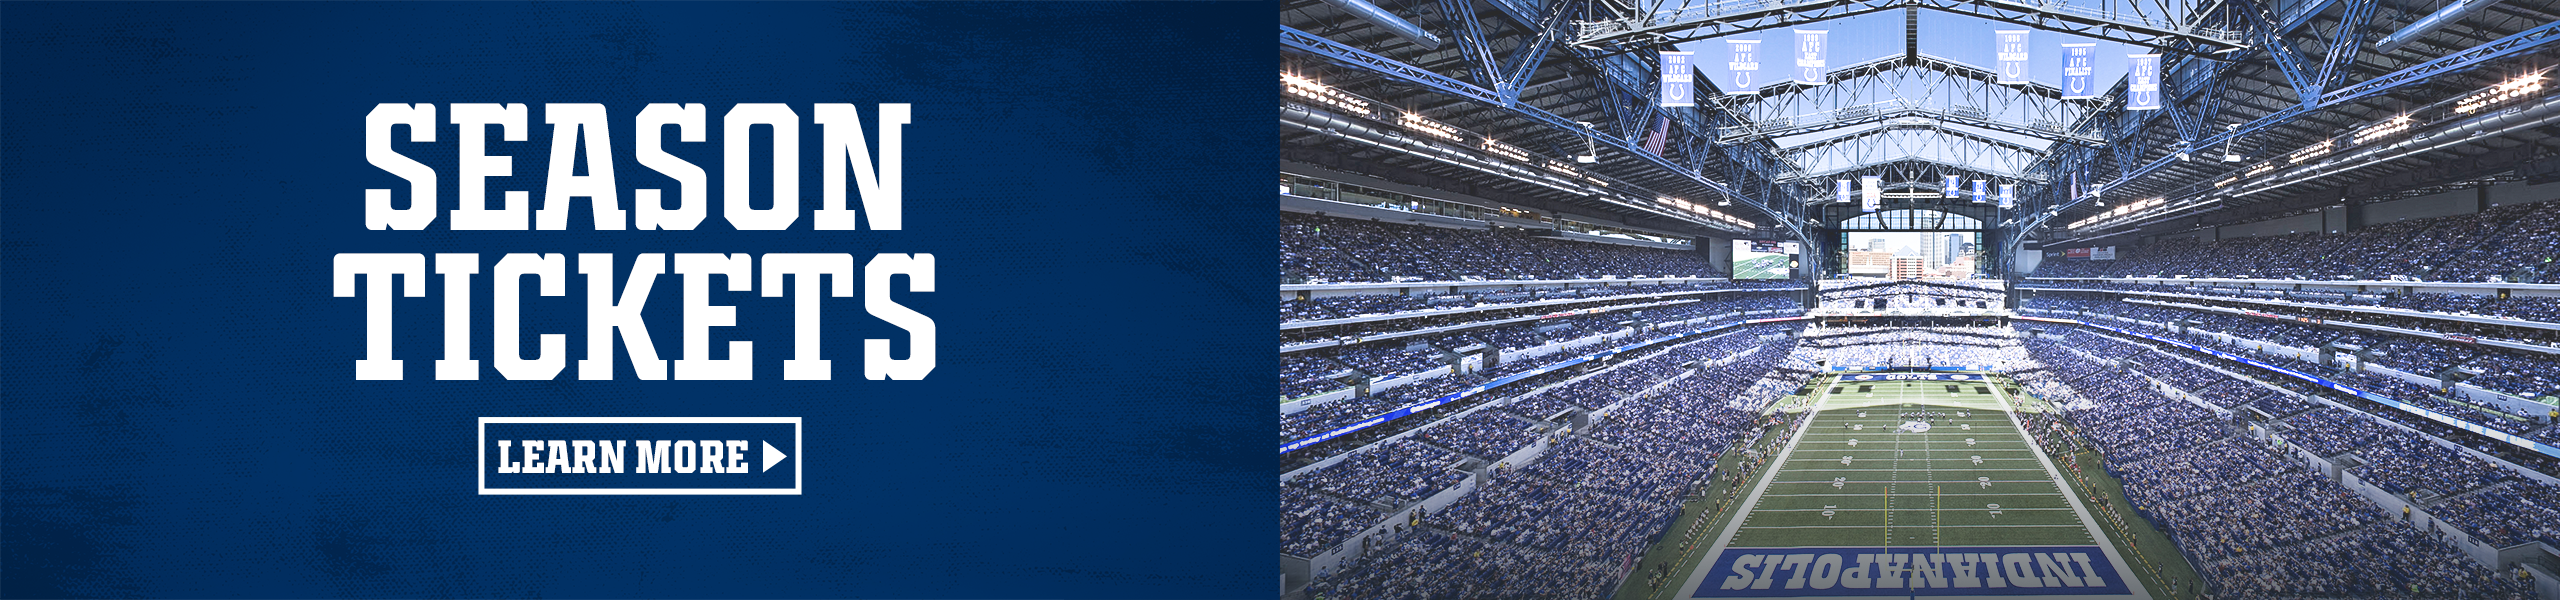 Season Tickets_header_2560x600 (1)